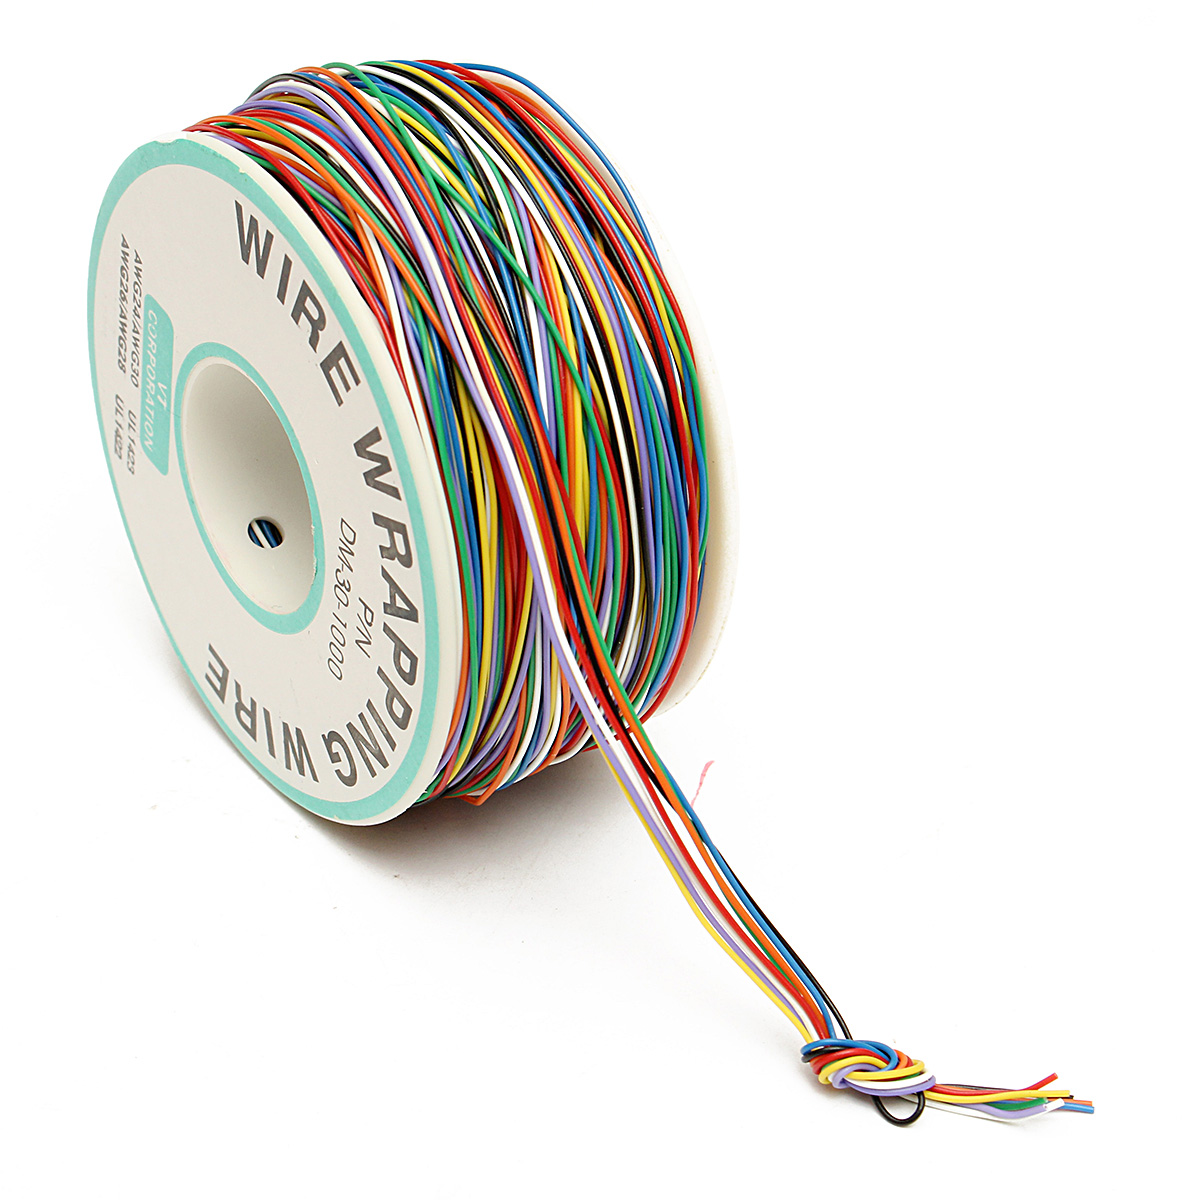 250m 8-Wire Coloured Insulated P/N B-30-1000 30AWG Wire Wrapping Cable Wrap Reel